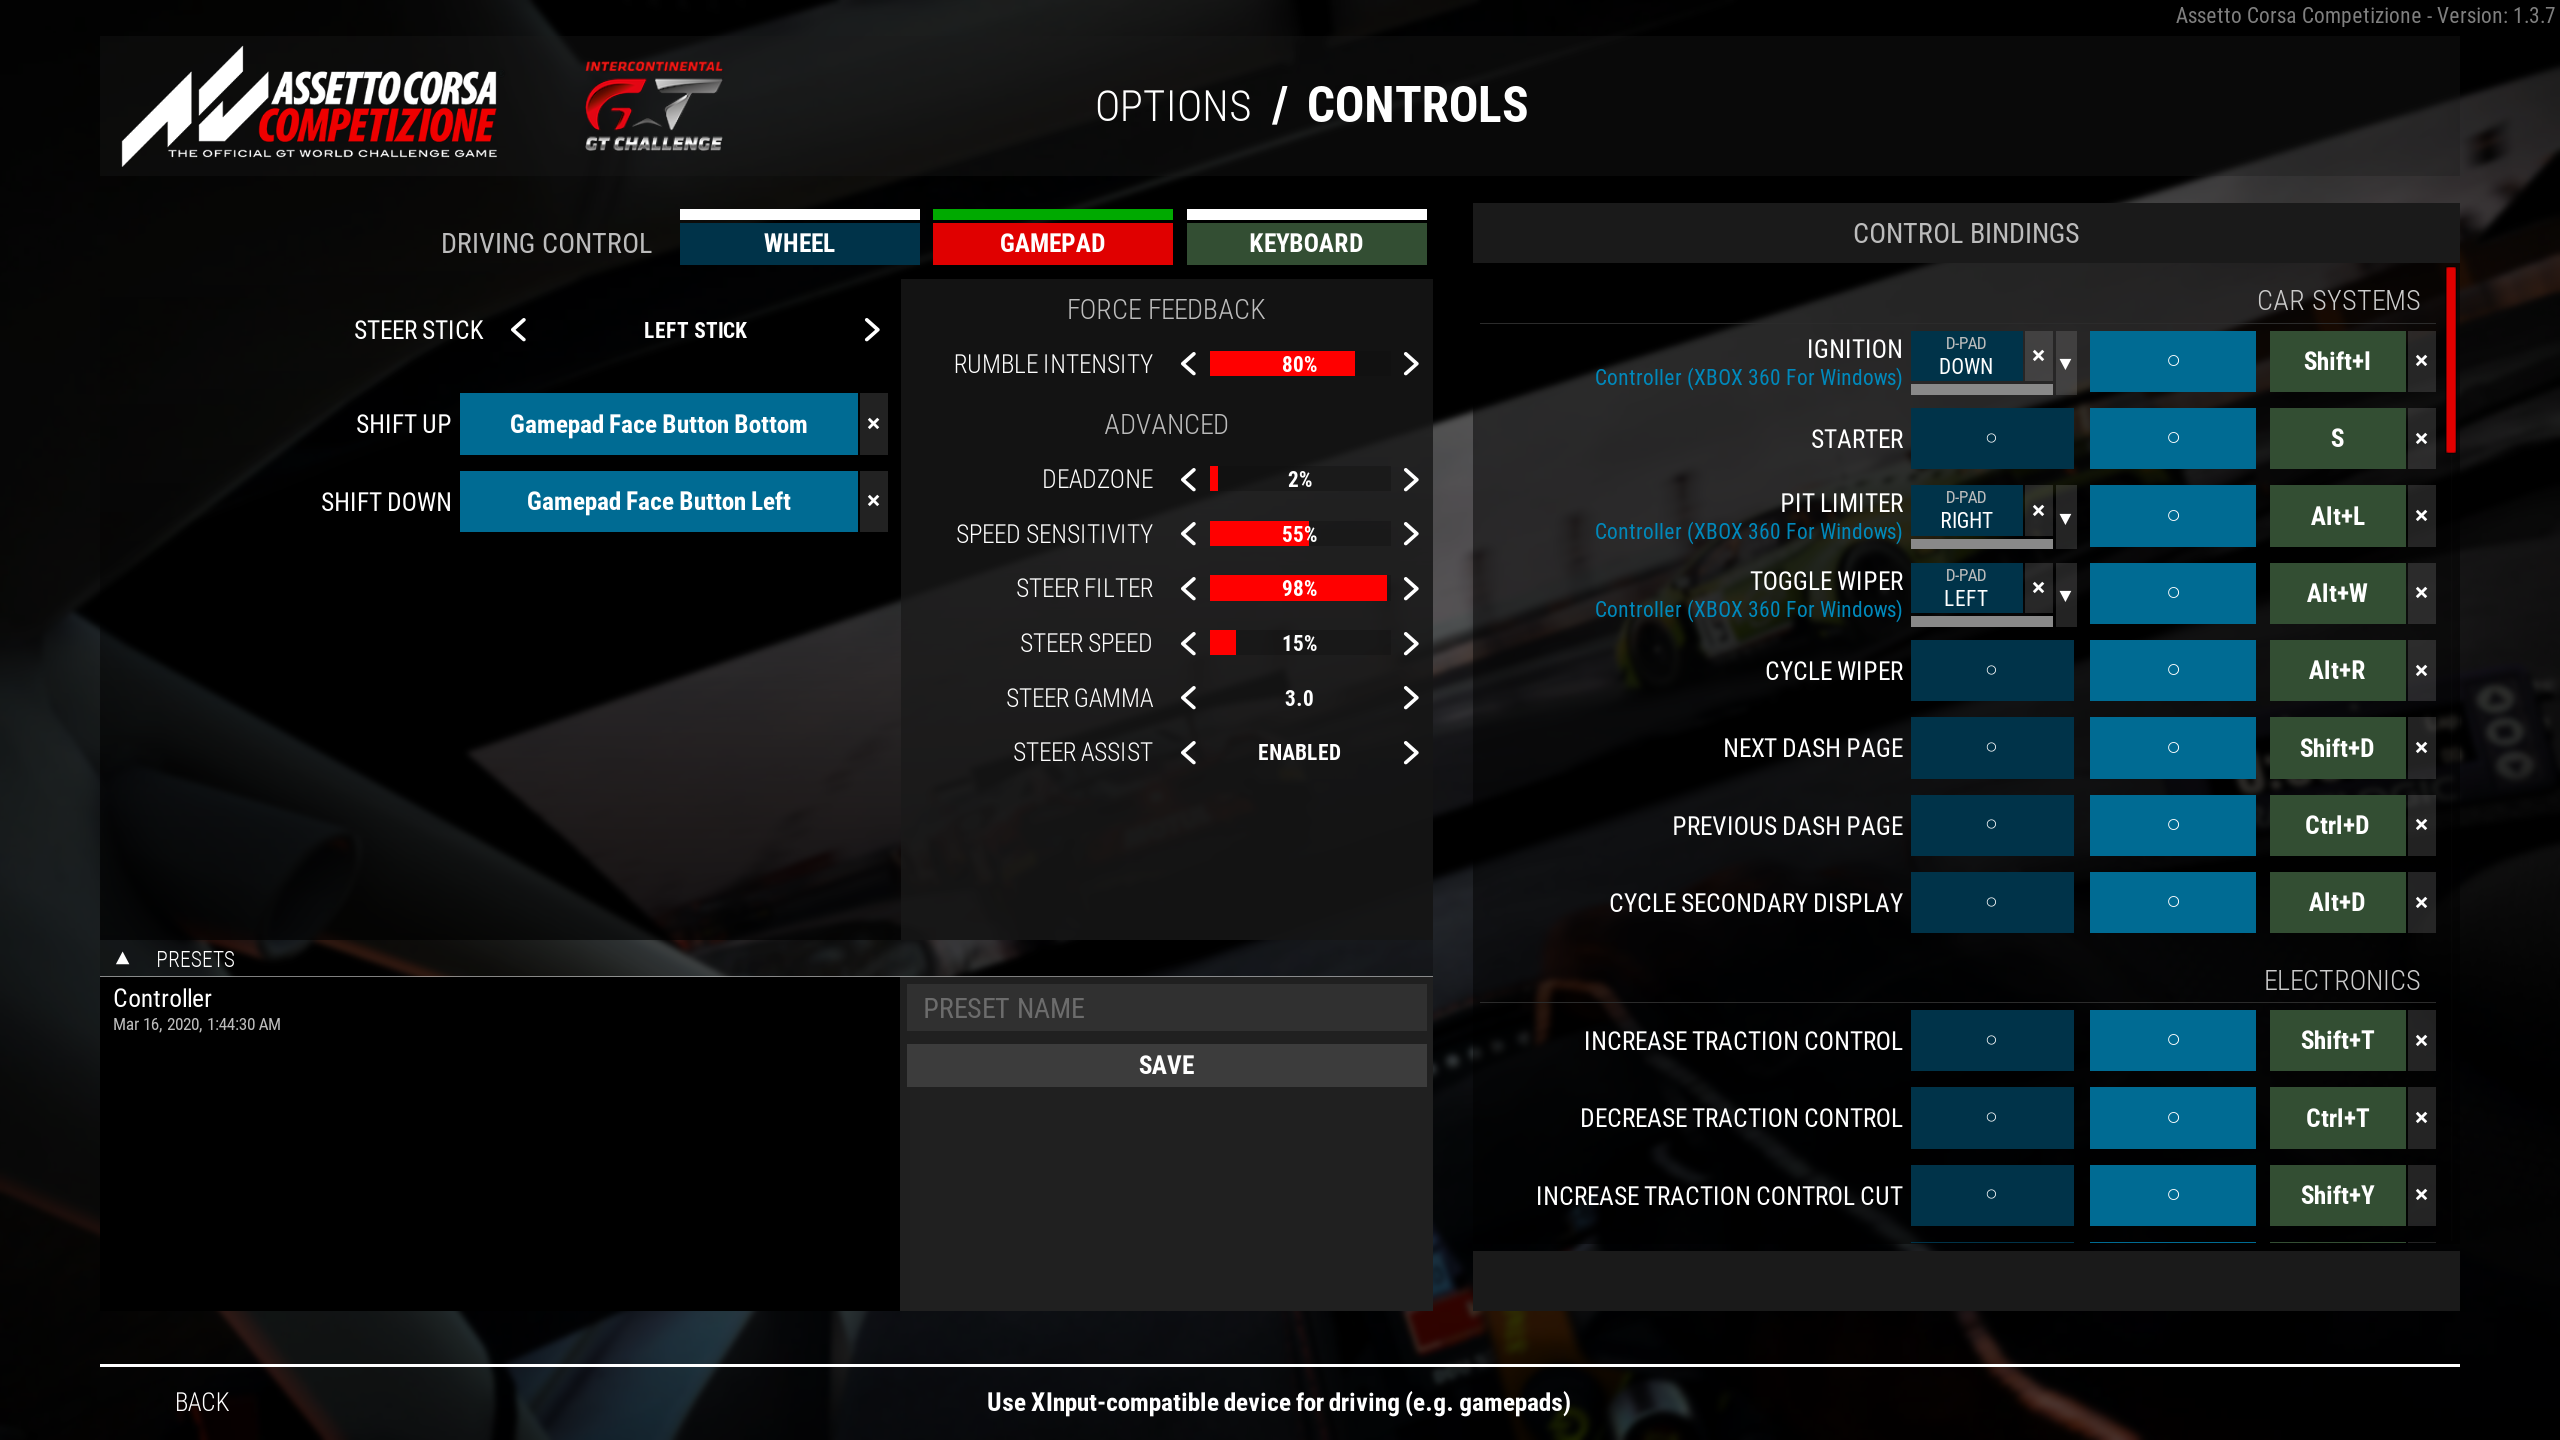 Optimale Controller-Setting für Assetto Corsa Competizione